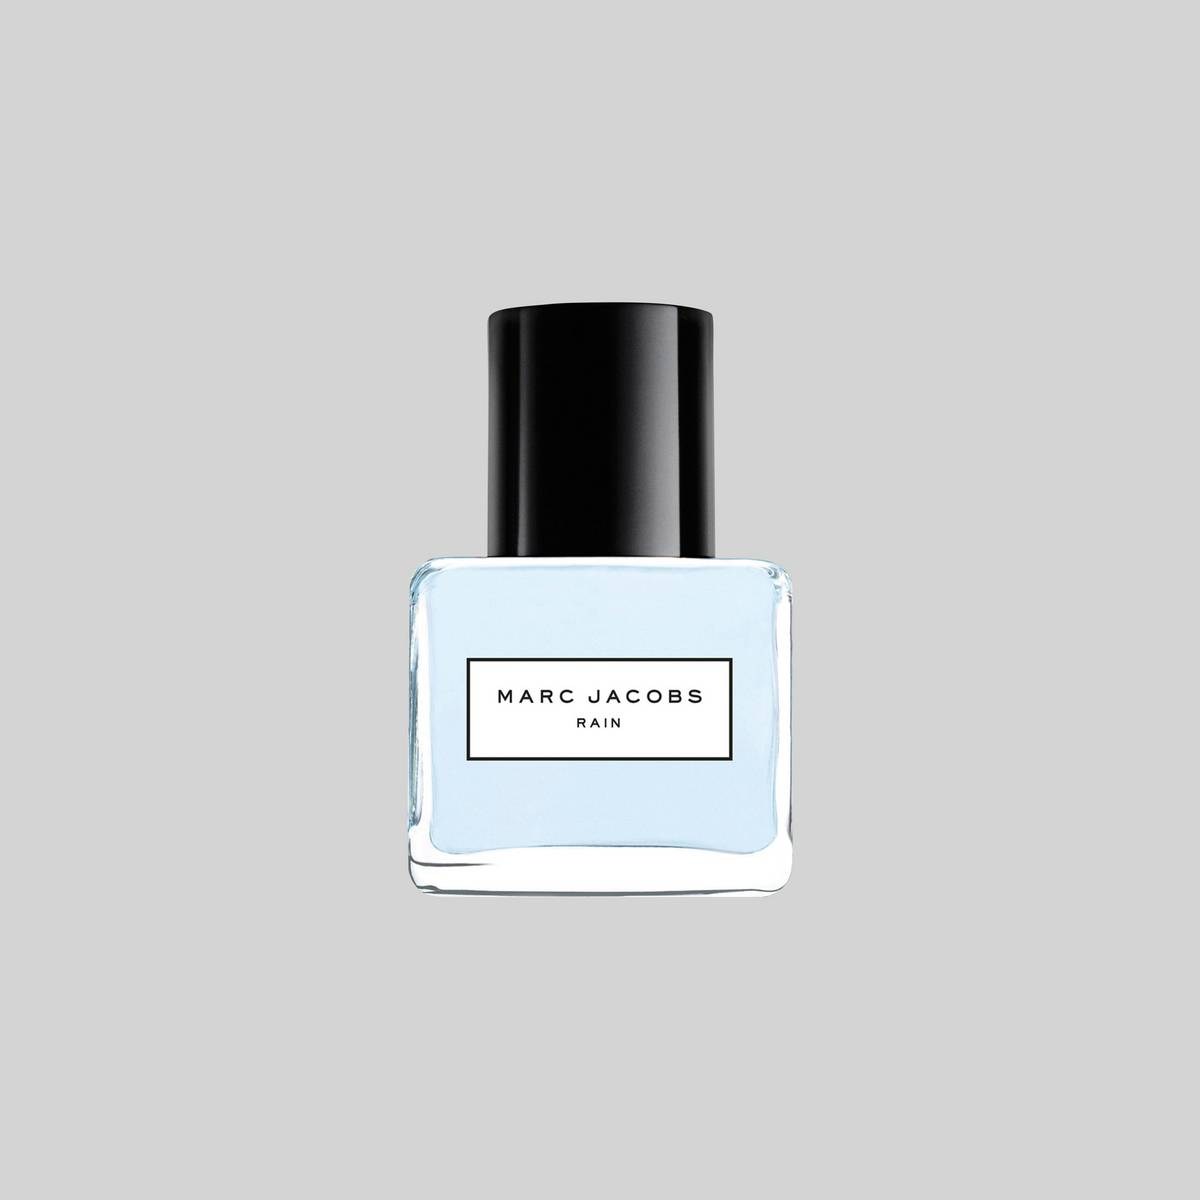 The Marc Jacobs Splash Rain captures the scent of a cool, refreshing summer shower. Please note: Due to restrictions and regulations governed by the U. S. Department of Transportation, all fragrances are considered hazmat items and are to be sent only by ground shipping services. Size: 100mL | MARC JACOBS Women\\'s Splash Rain Fragrance